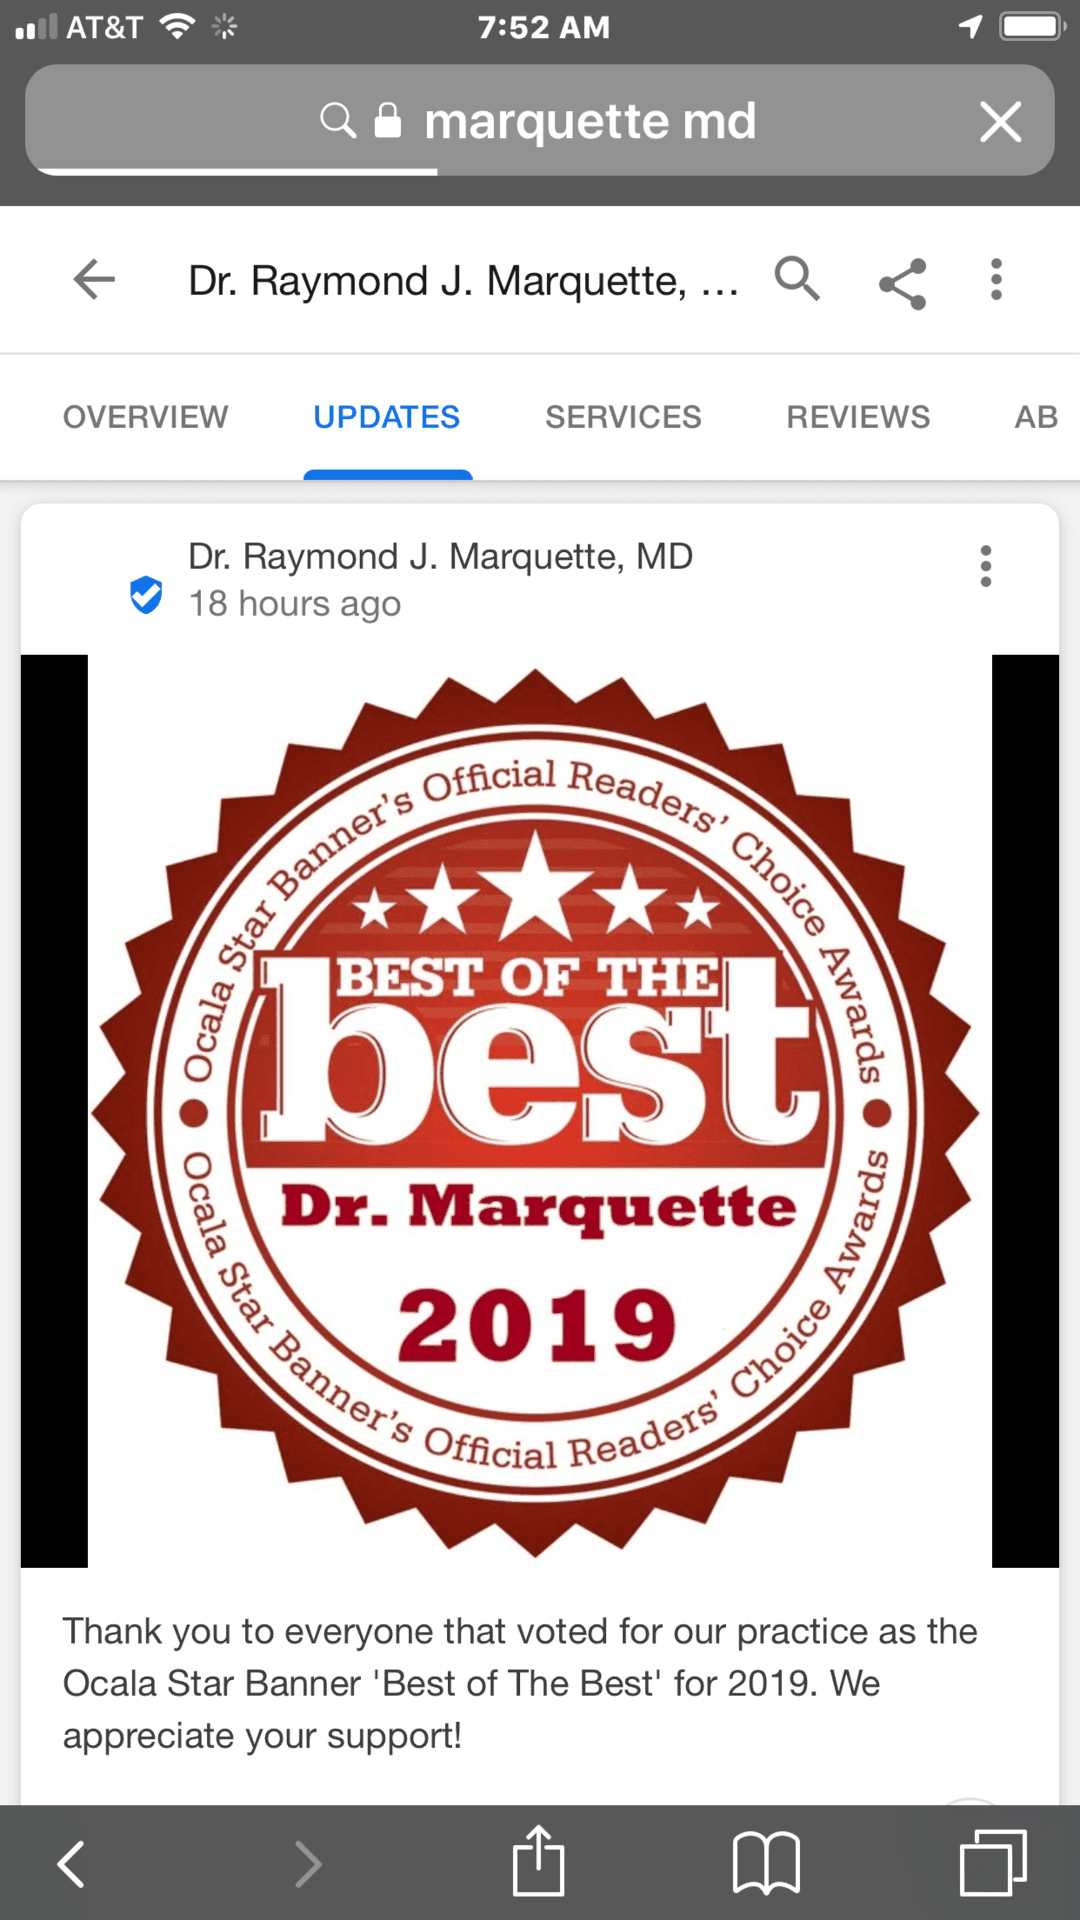 the best of the best award pic